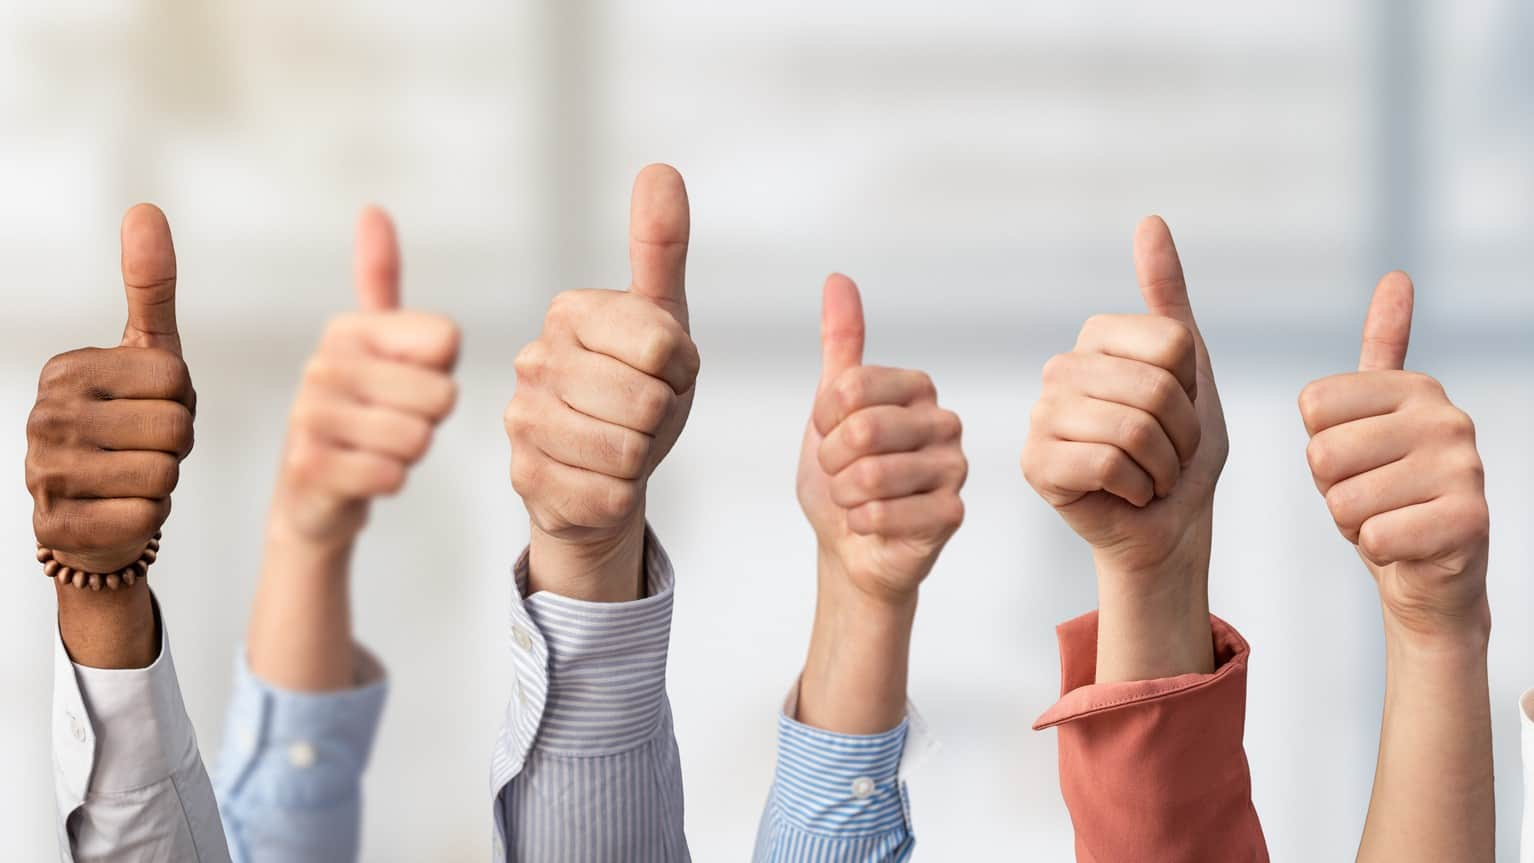 lots of hands all making thumbs up gesture